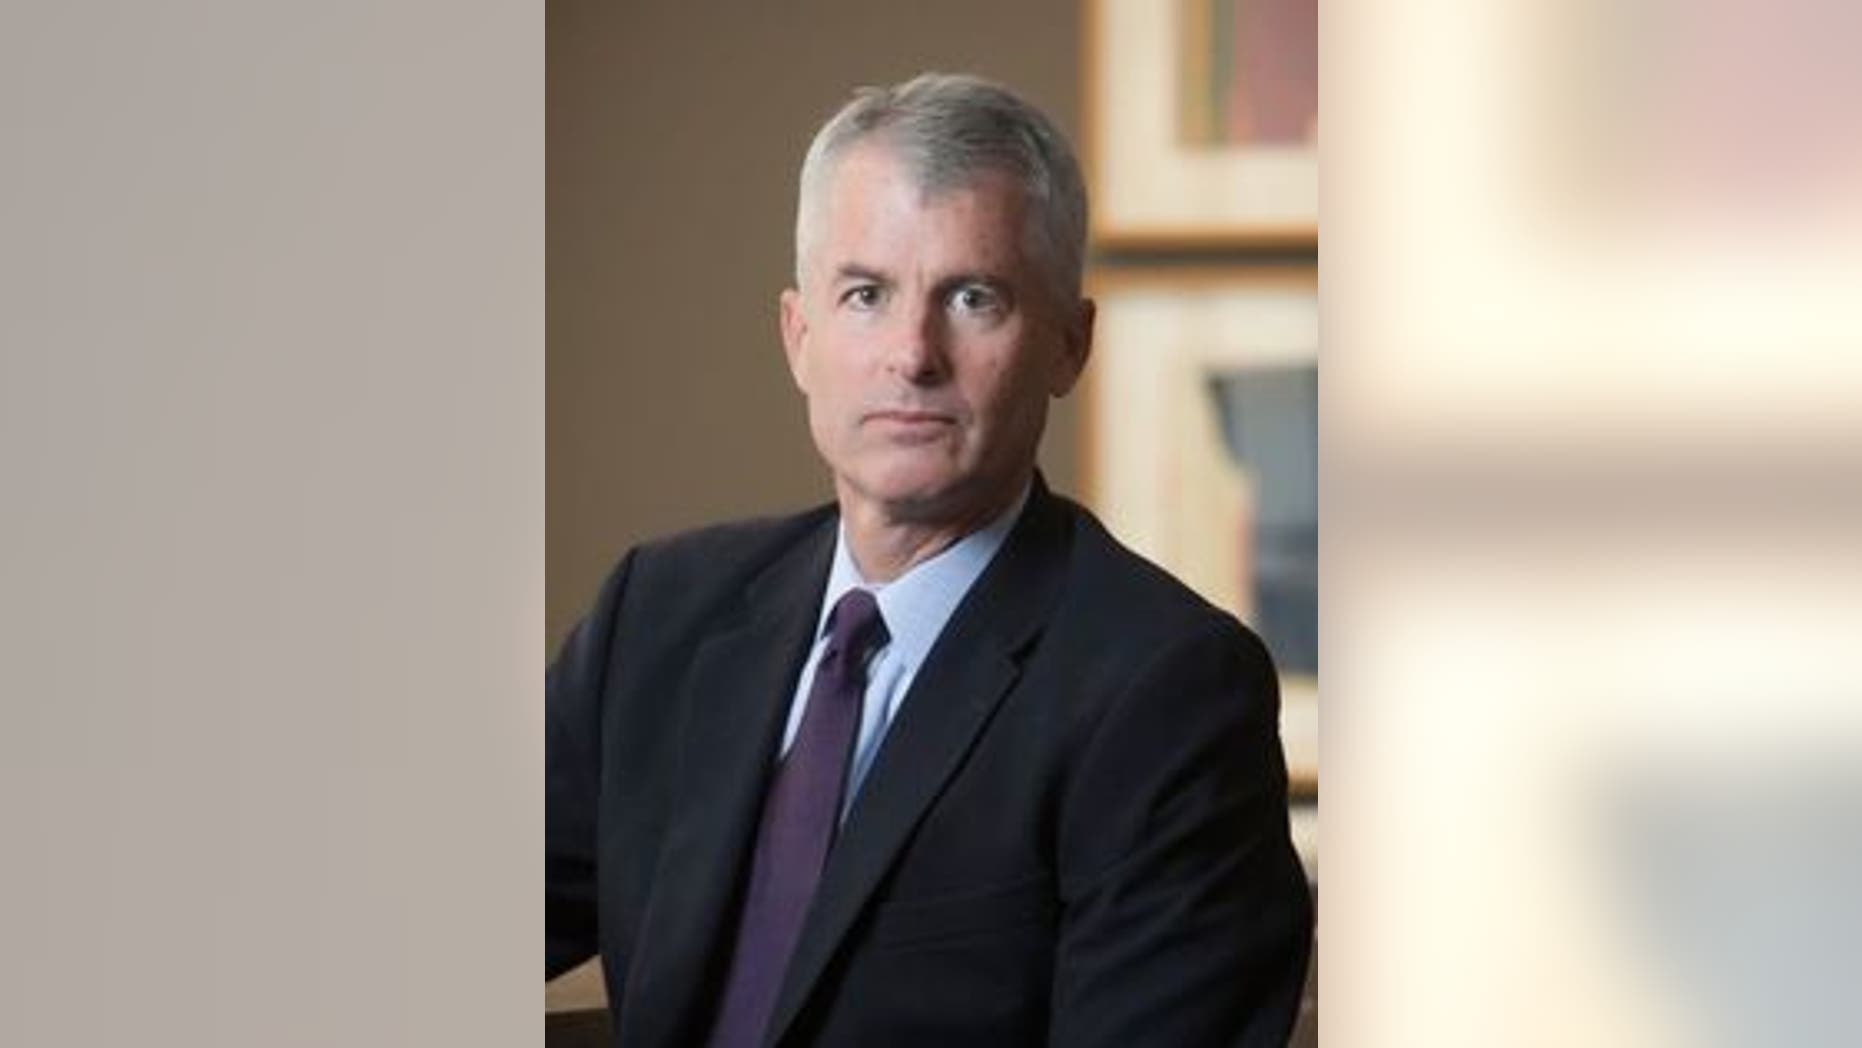 """CNN analyst and former CIA official Philip Mudd on Monday pondered whether a """"shadow government"""" will come out against President Donald Trump after the controversial summit with Russian President Vladimir Putin."""